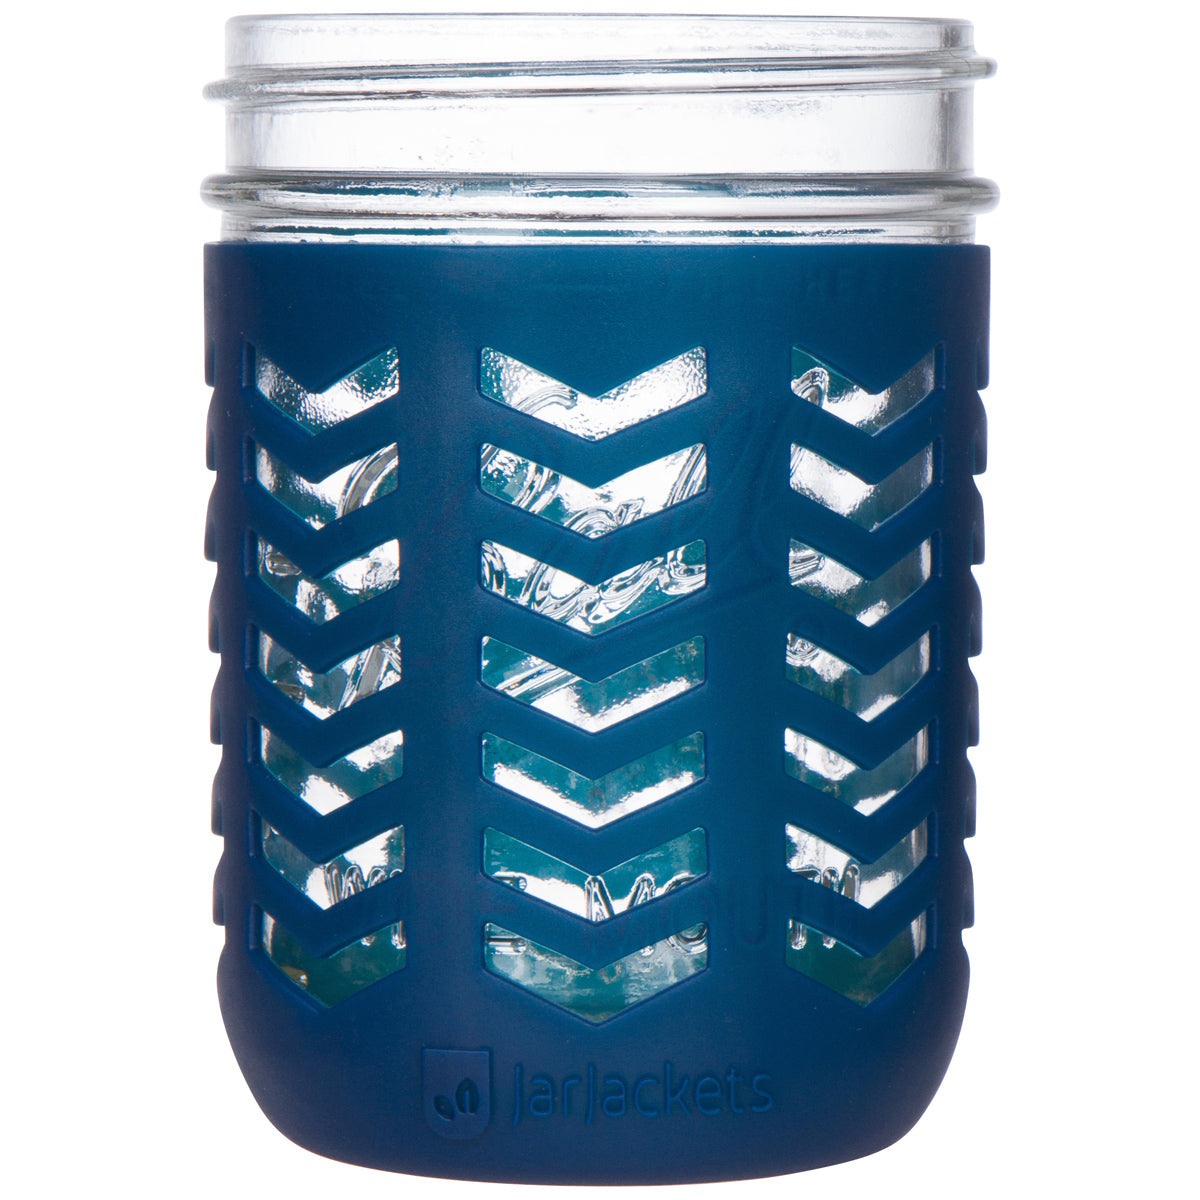 Mason Jar Silicone Sleeve - 16oz (1 pint) Wide-Mouth Jars (Midnight)